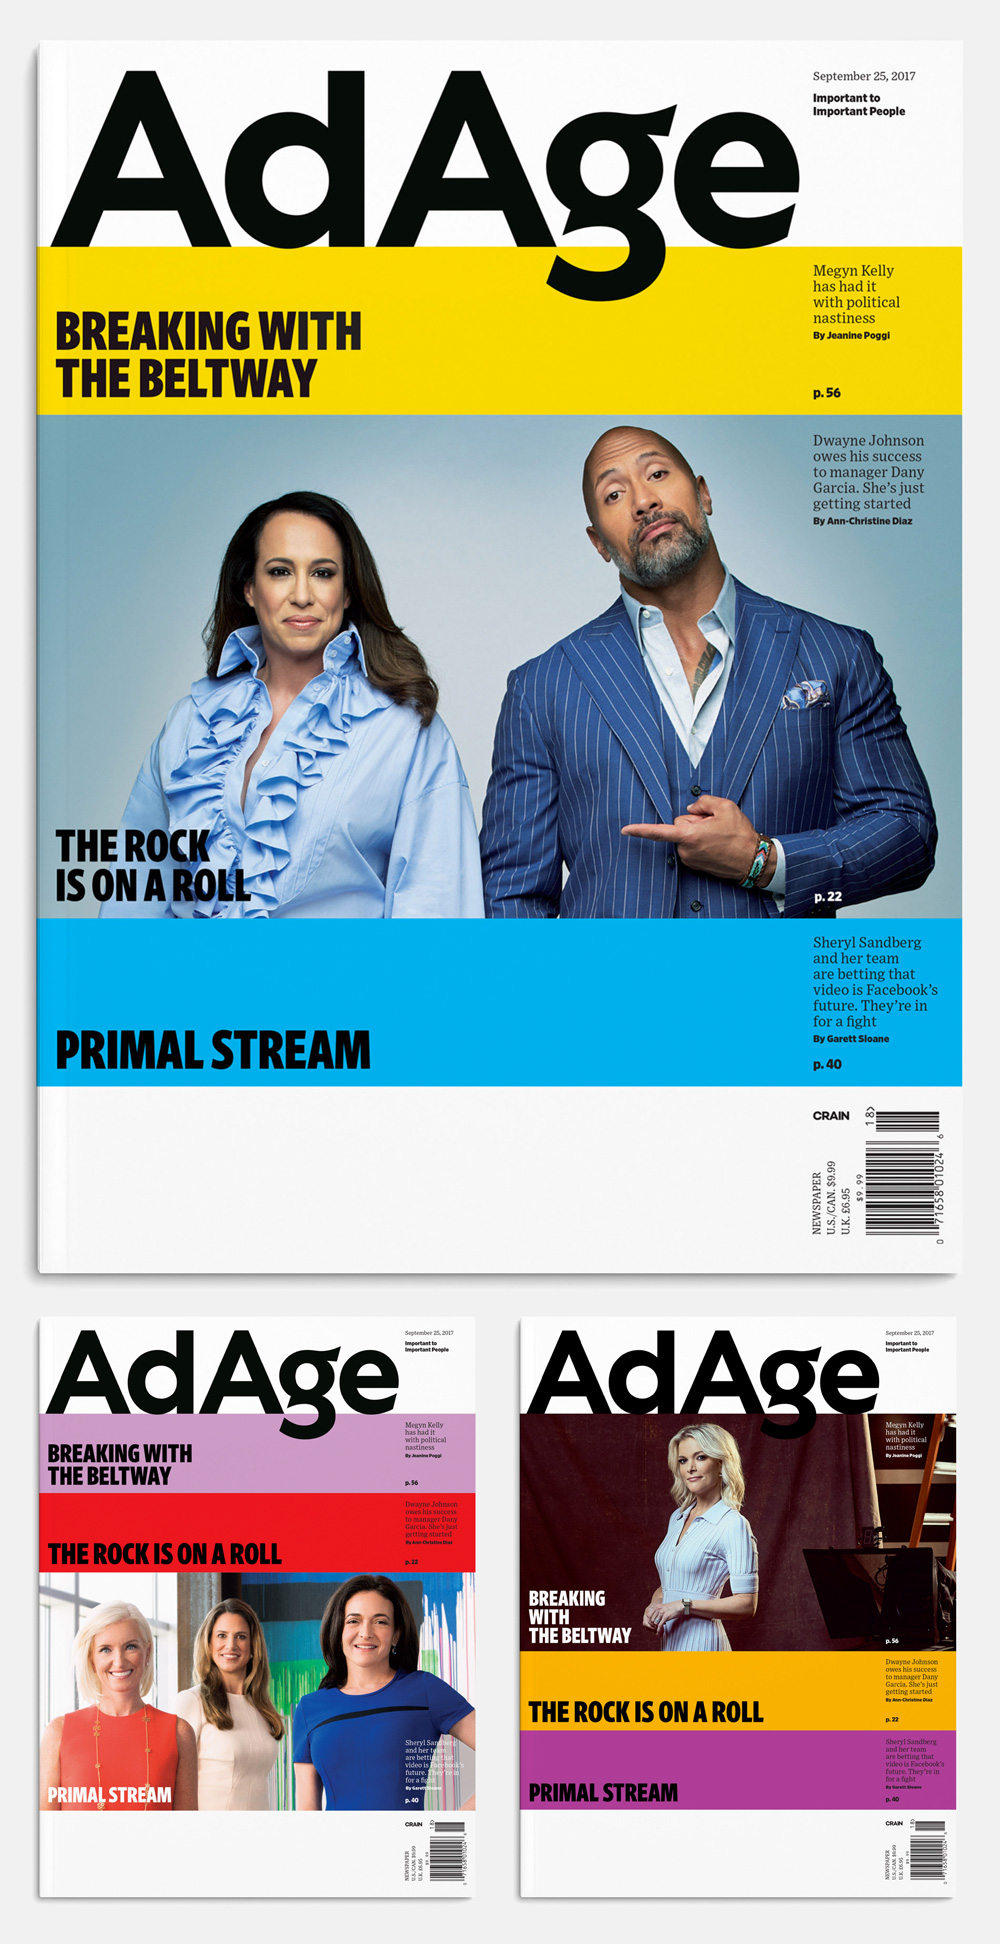 Brand New: New Logo and Identity for AdAge by OCD.